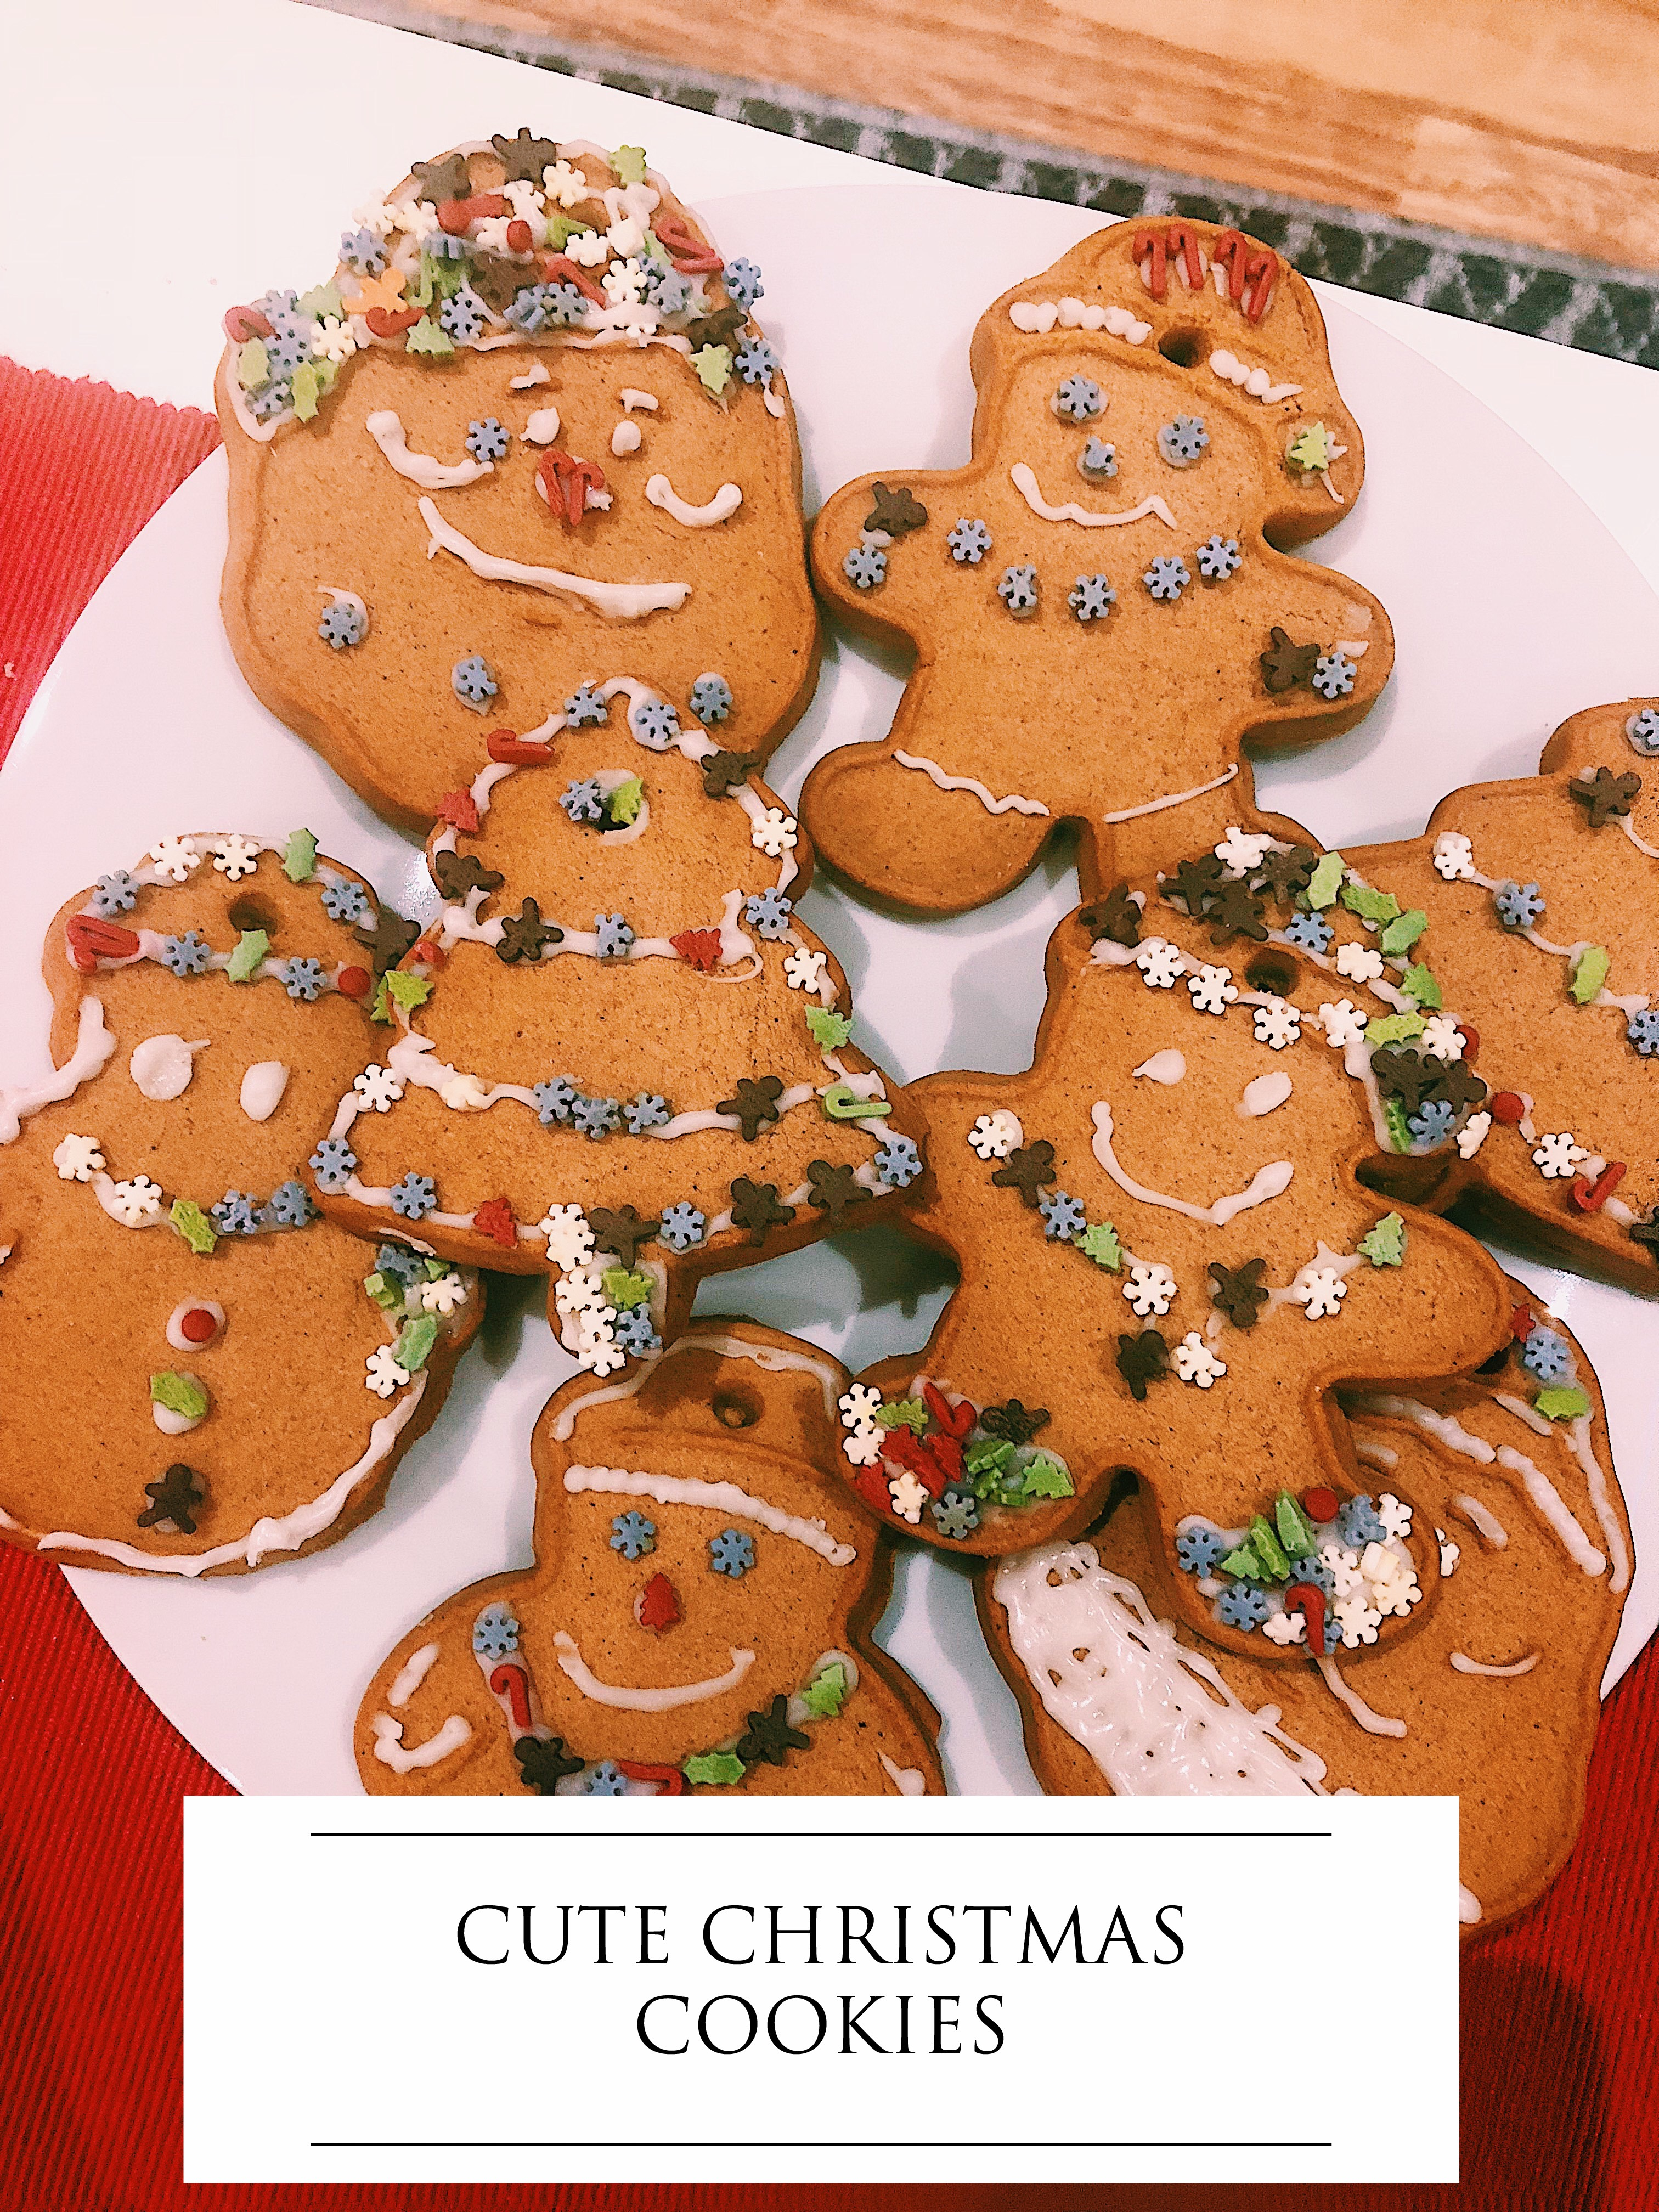 Cute Christmas Cookies The Stoker Story